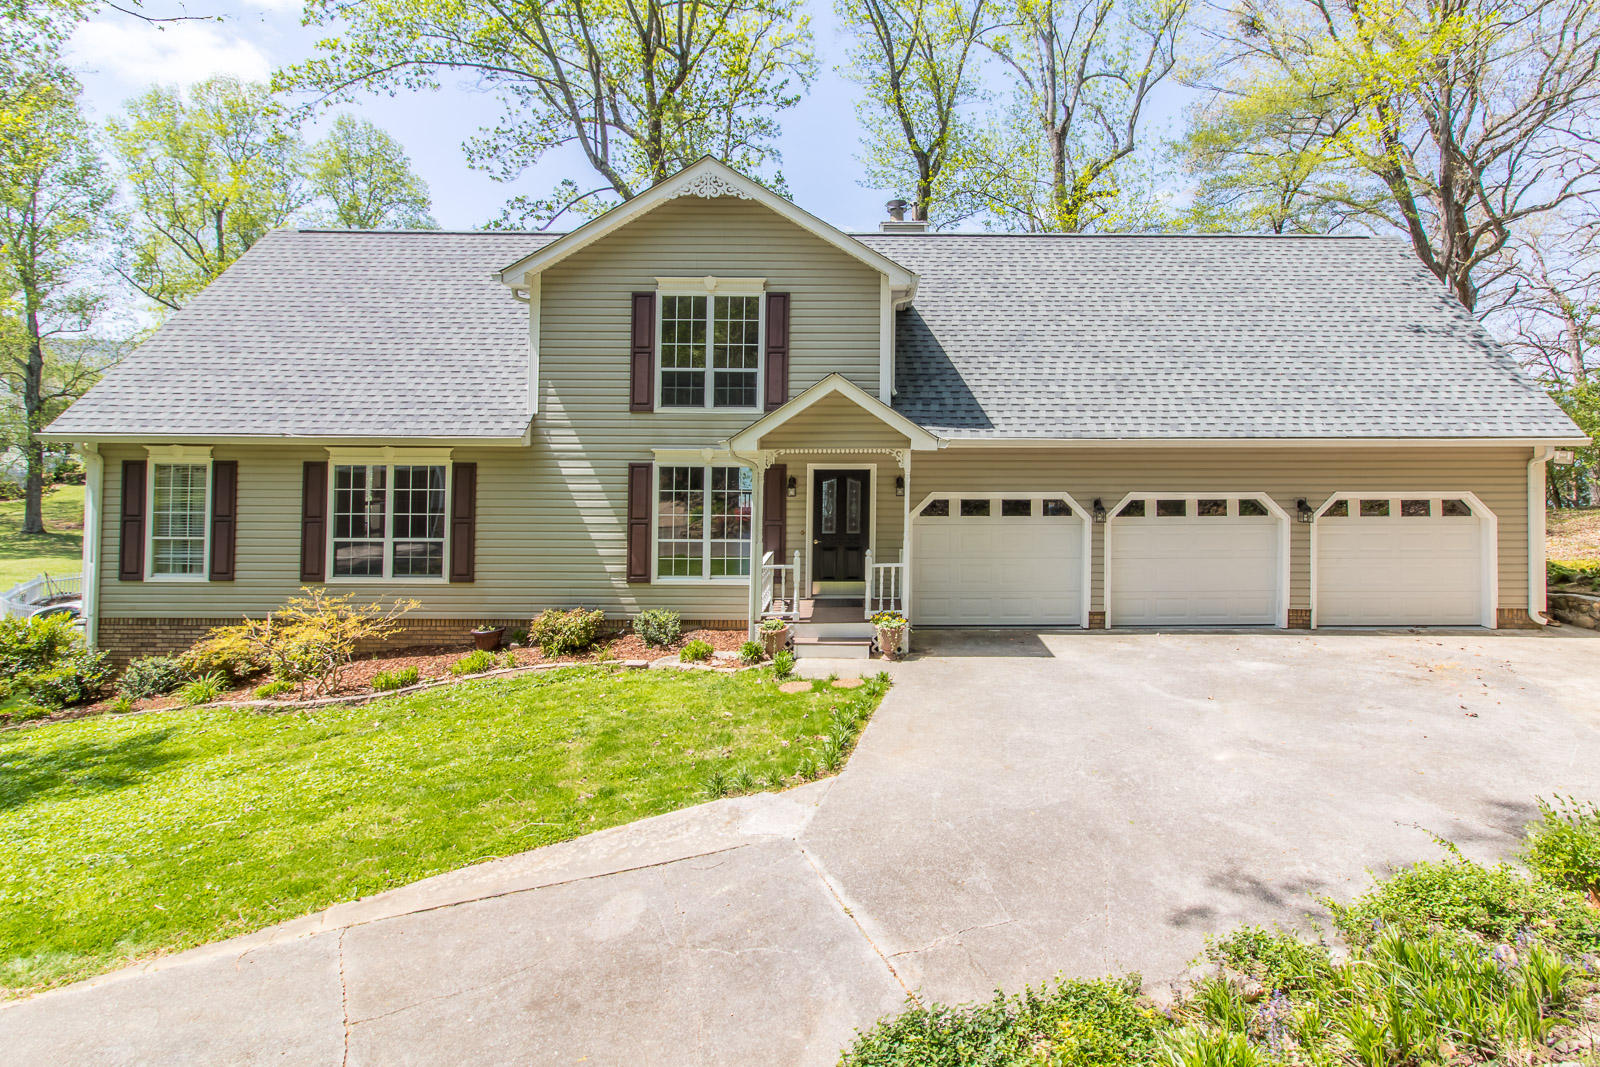 11648 Hixson Pike, Soddy Daisy, TN 37379